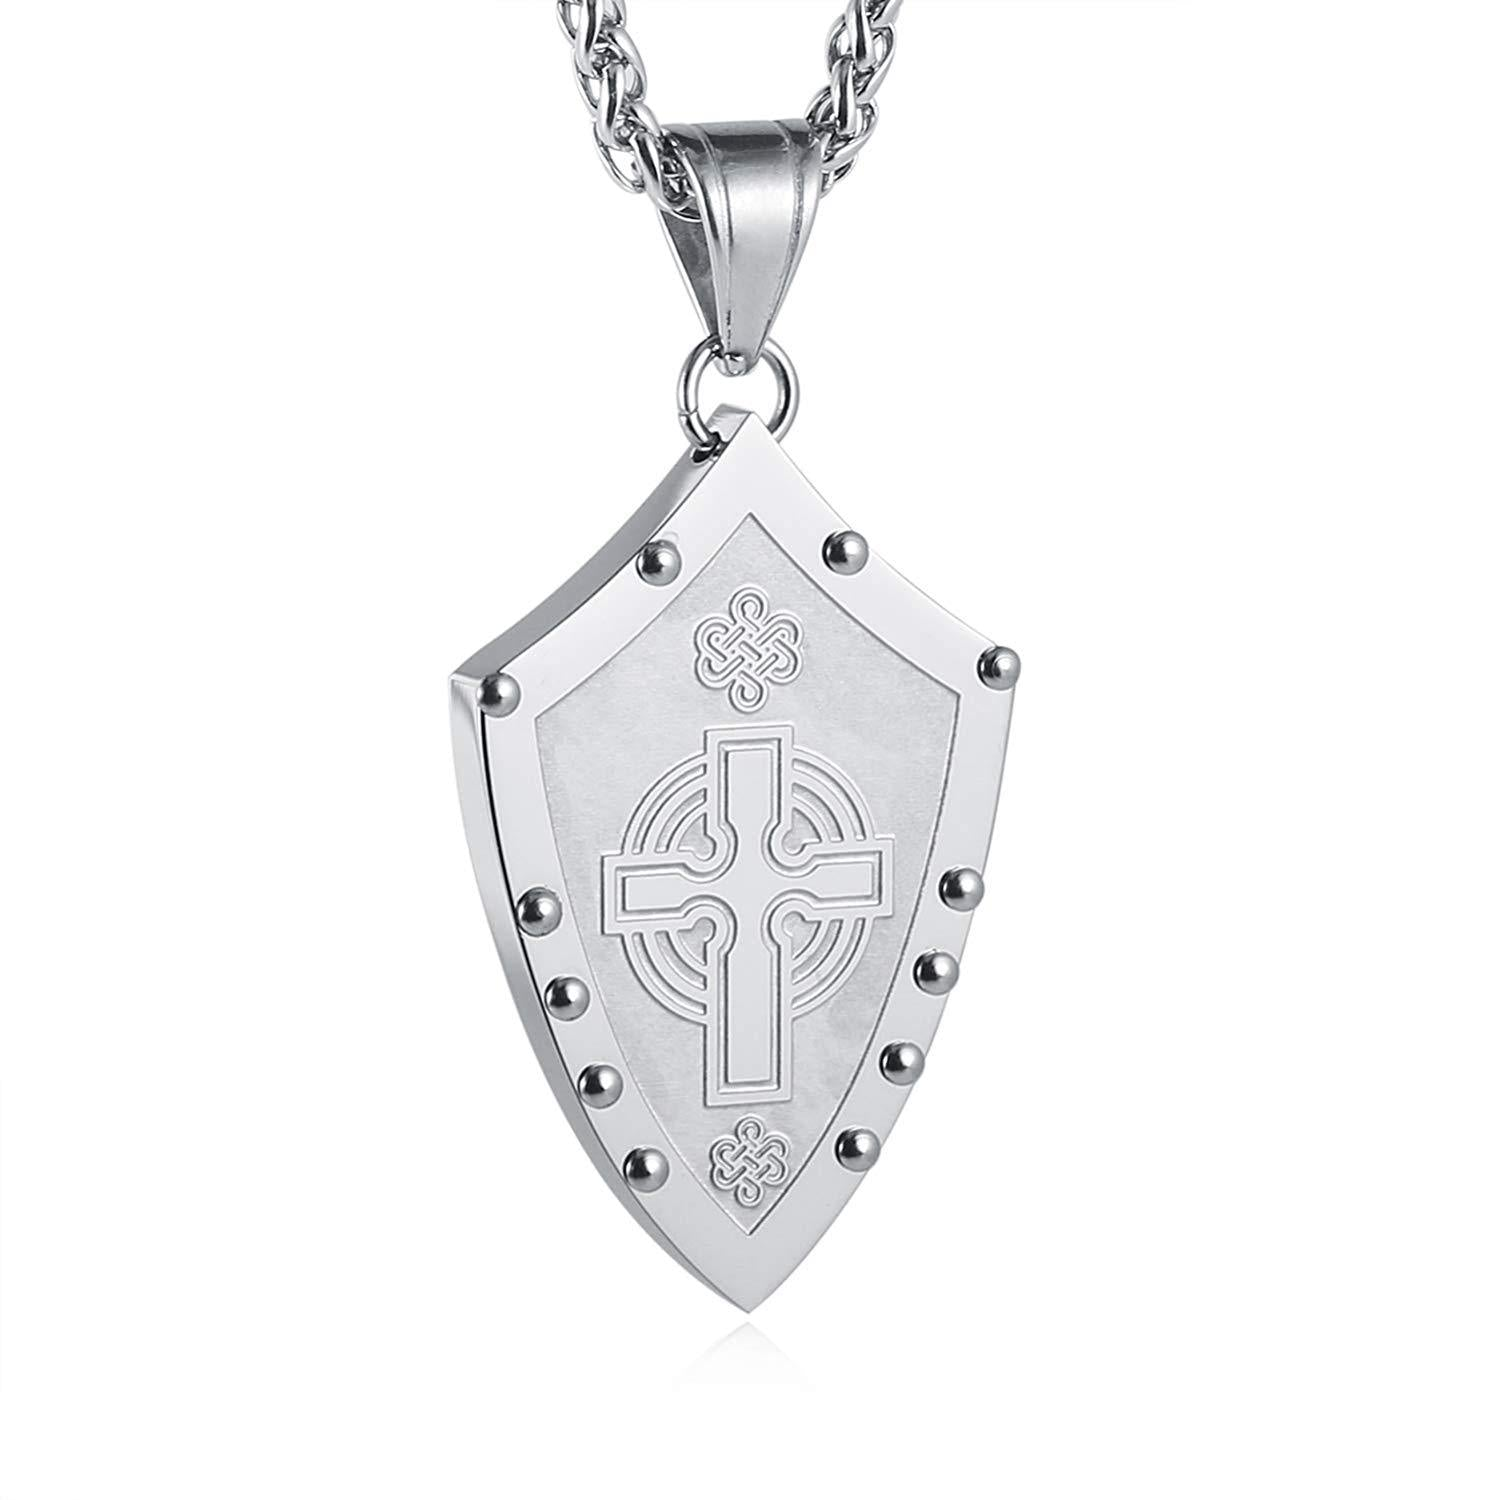 HZMAN Men's Warriors Medieval Shield Celtic Knot Irish Cross Stainless Steel Pendant Necklace